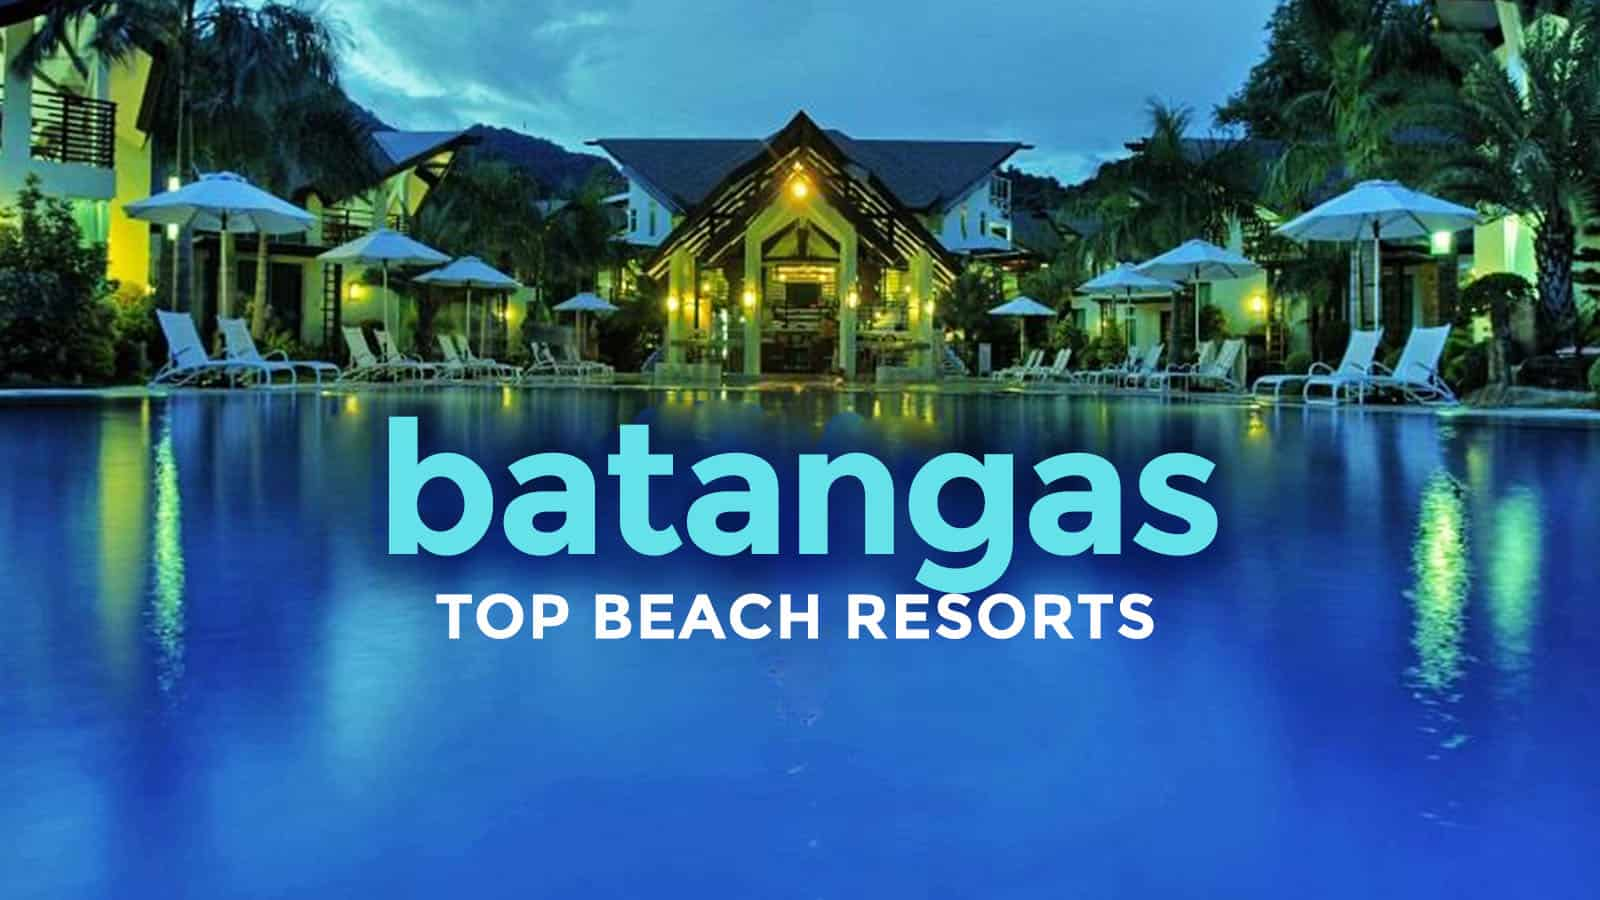 Top 10 beach resorts in batangas the poor traveler blog for The best beach vacations